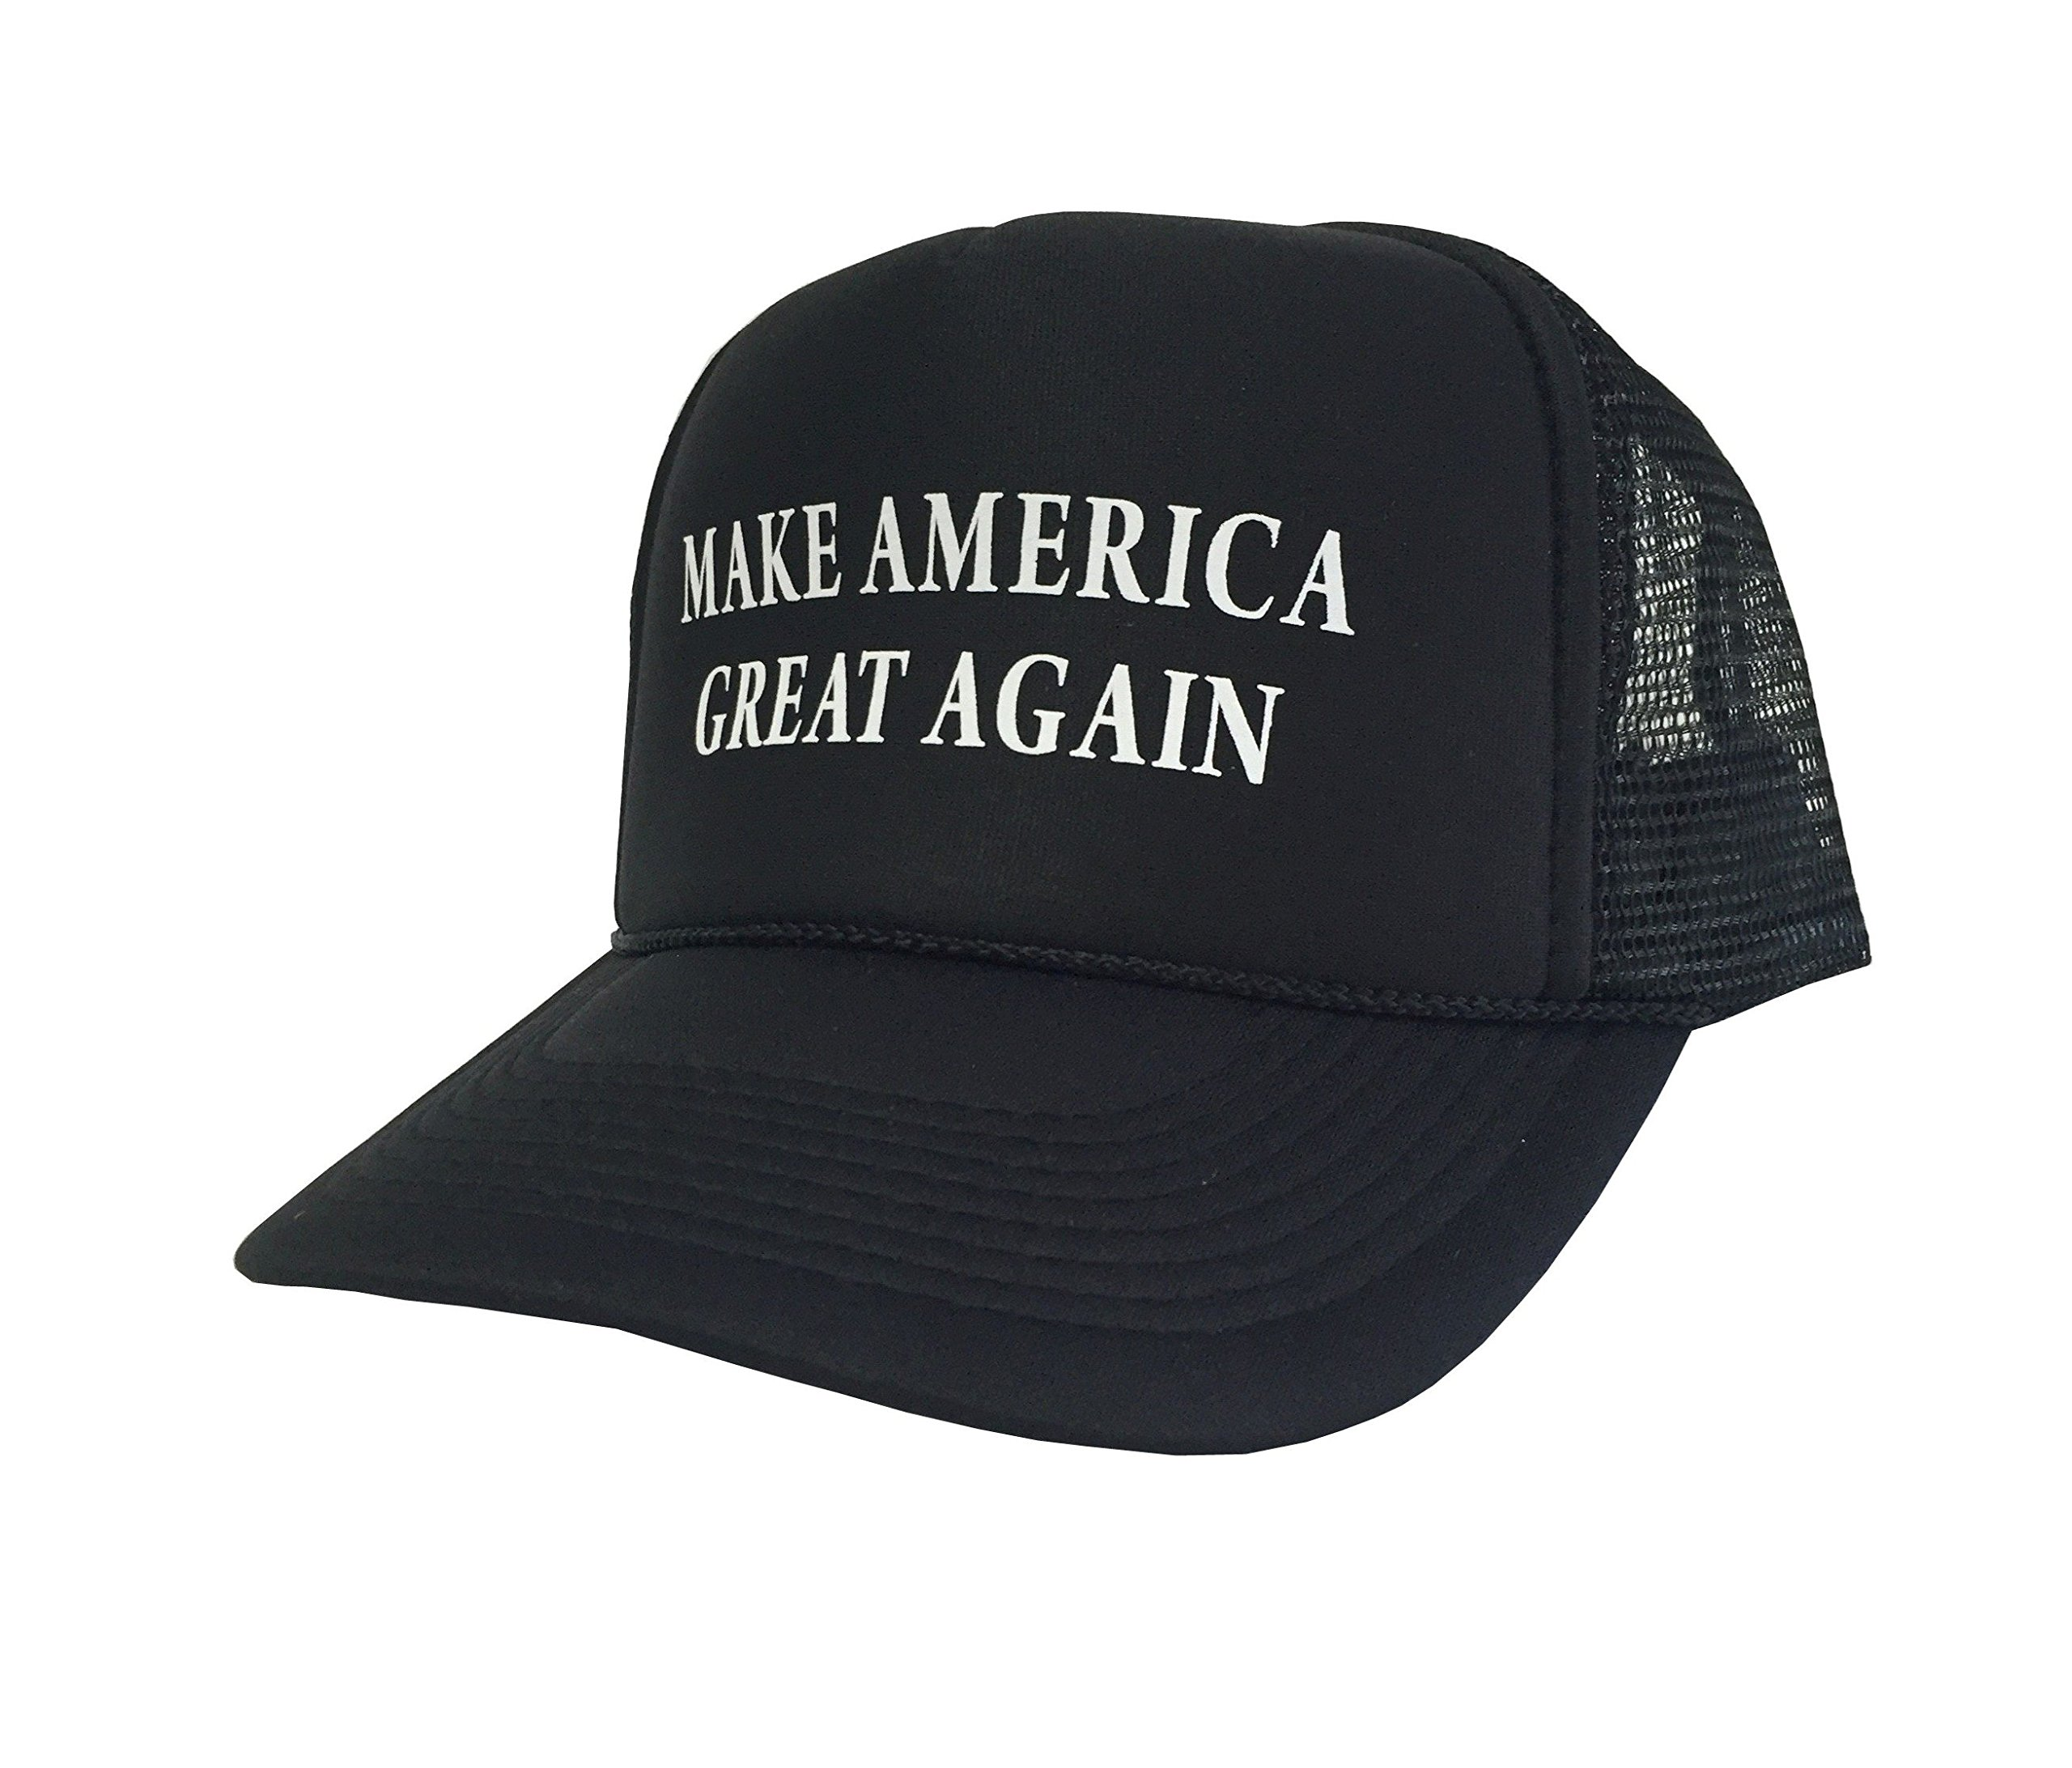 Campaign Adjustable Unisex Hat Cap Make America Great Again! Donald Trump